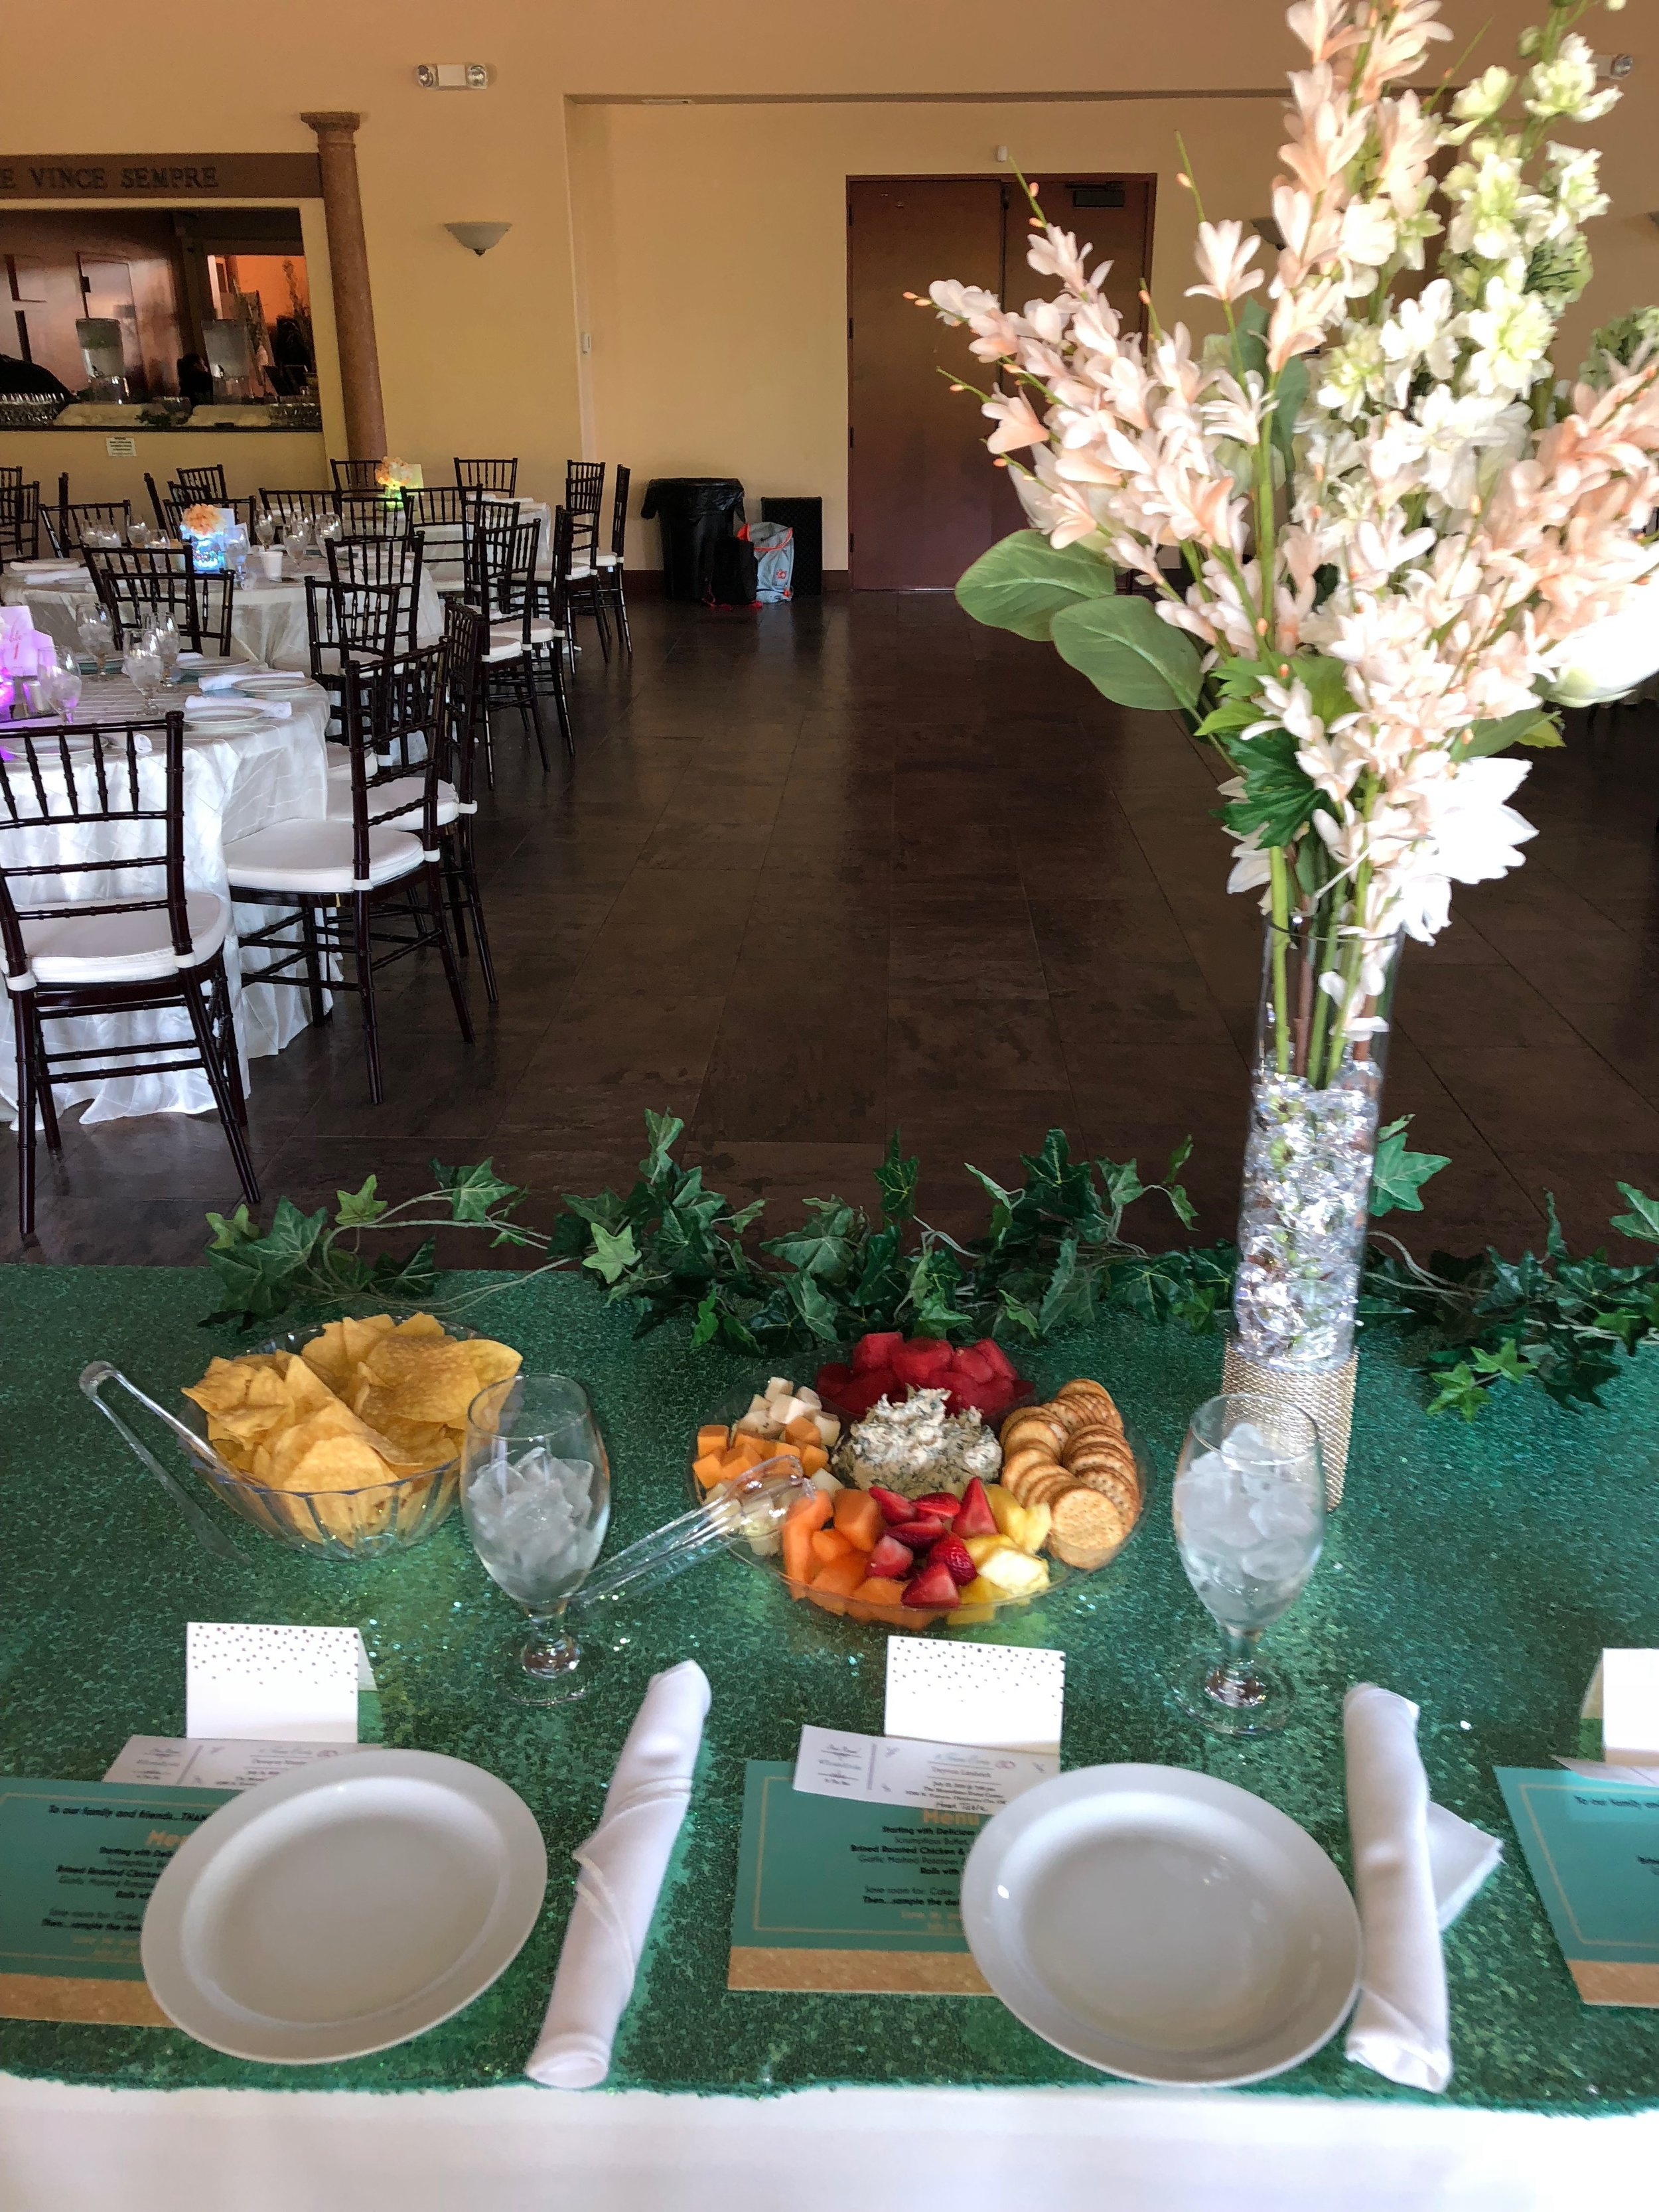 Catering room pic.JPG